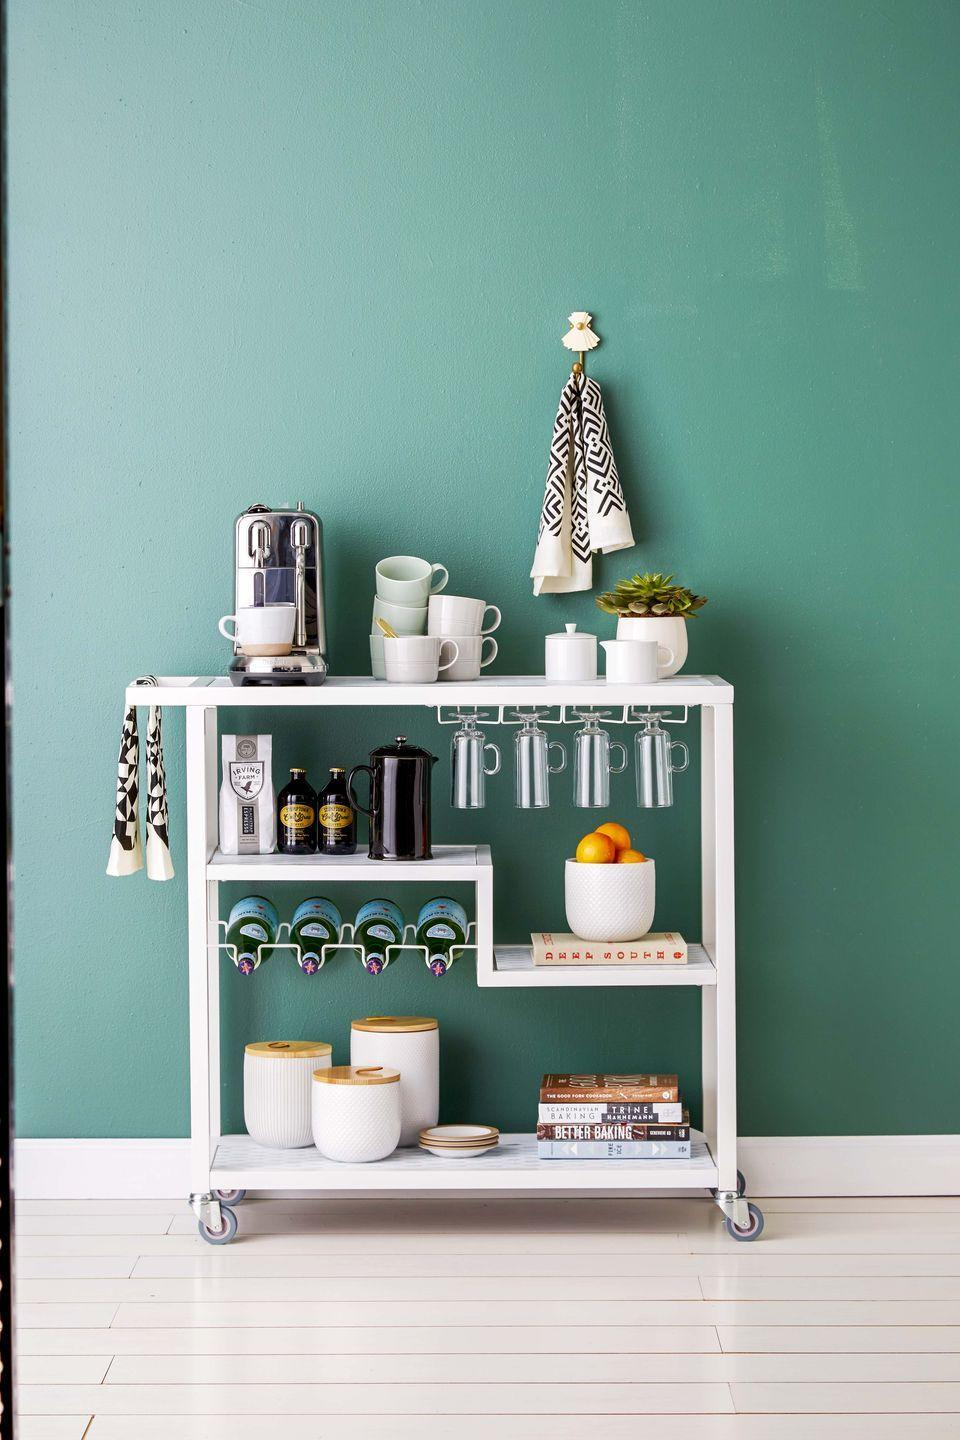 """<p>Turn a bar cart into your local coffeehouse with your <a href=""""https://www.goodhousekeeping.com/appliances/coffee-maker-reviews/g2083/top-rated-coffeemakers/"""" rel=""""nofollow noopener"""" target=""""_blank"""" data-ylk=""""slk:coffee maker"""" class=""""link rapid-noclick-resp"""">coffee maker</a> and mugs within easy reach. Add breakfast bars and dry cereal to the shelves so kids can grab and go. </p>"""